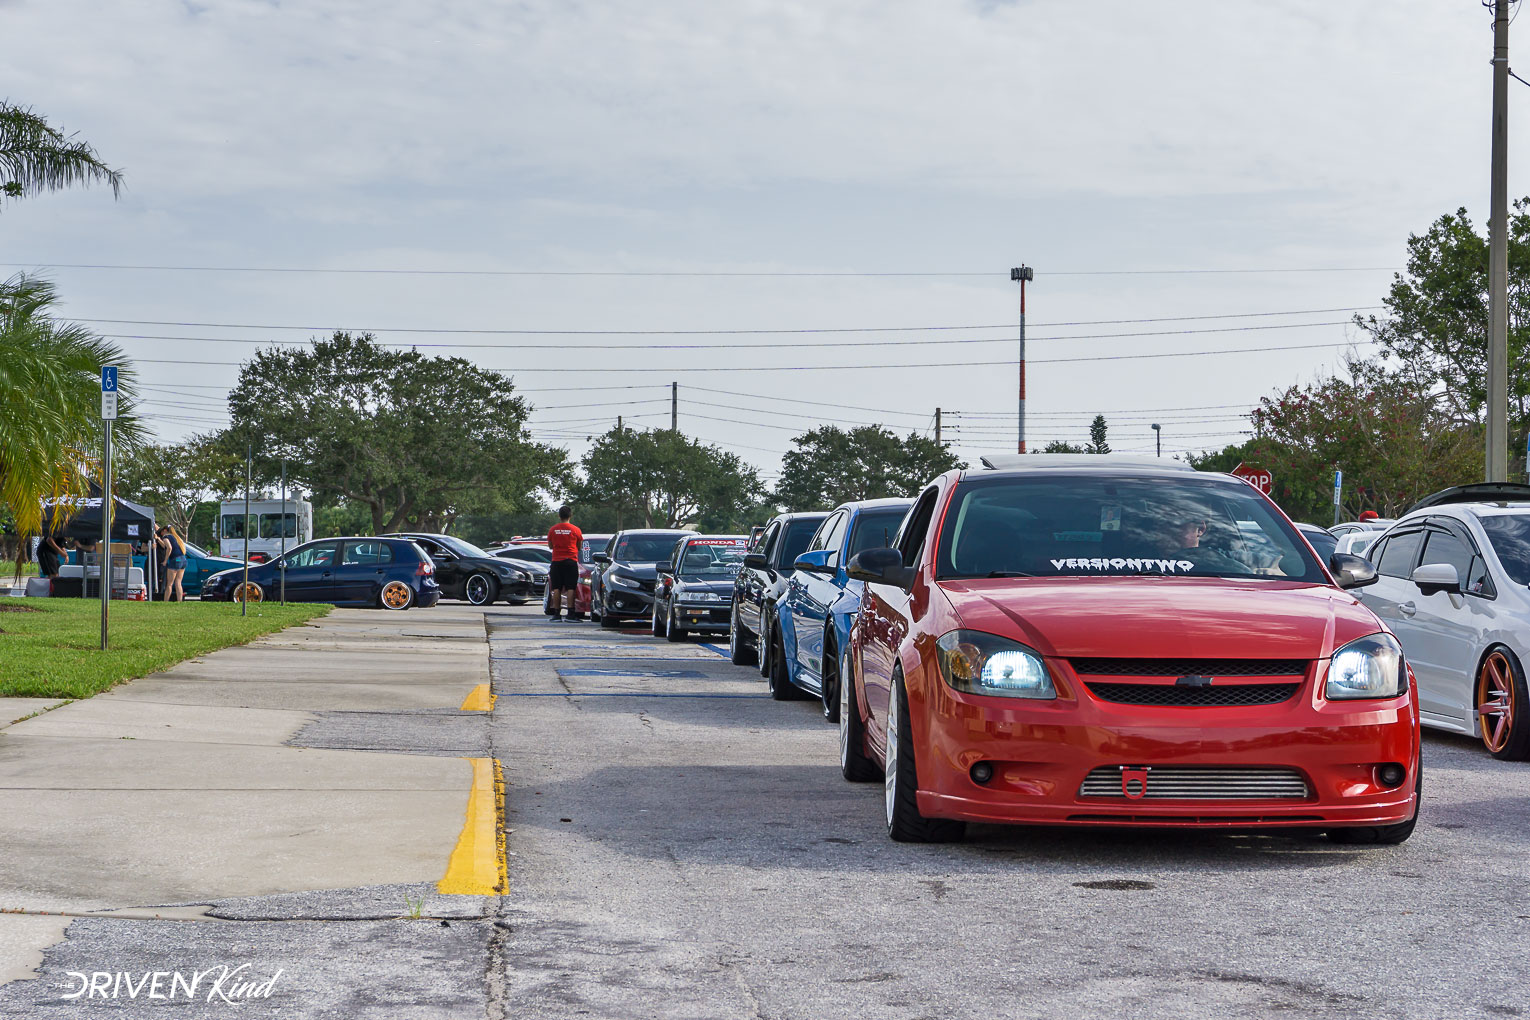 Daily Driven Inc. Presents Florida's Finest Melbourne FL Auditorium coverage by The Driven Kind